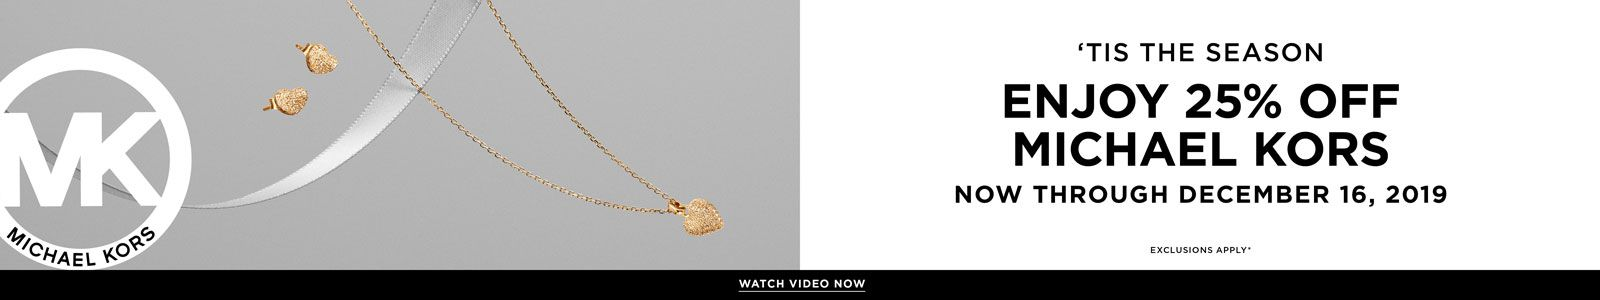 Michael Kors 'Tis The Season Enjoy 25 percent Off Michael Kors Now Through December 16, 2019, Watch Video Now